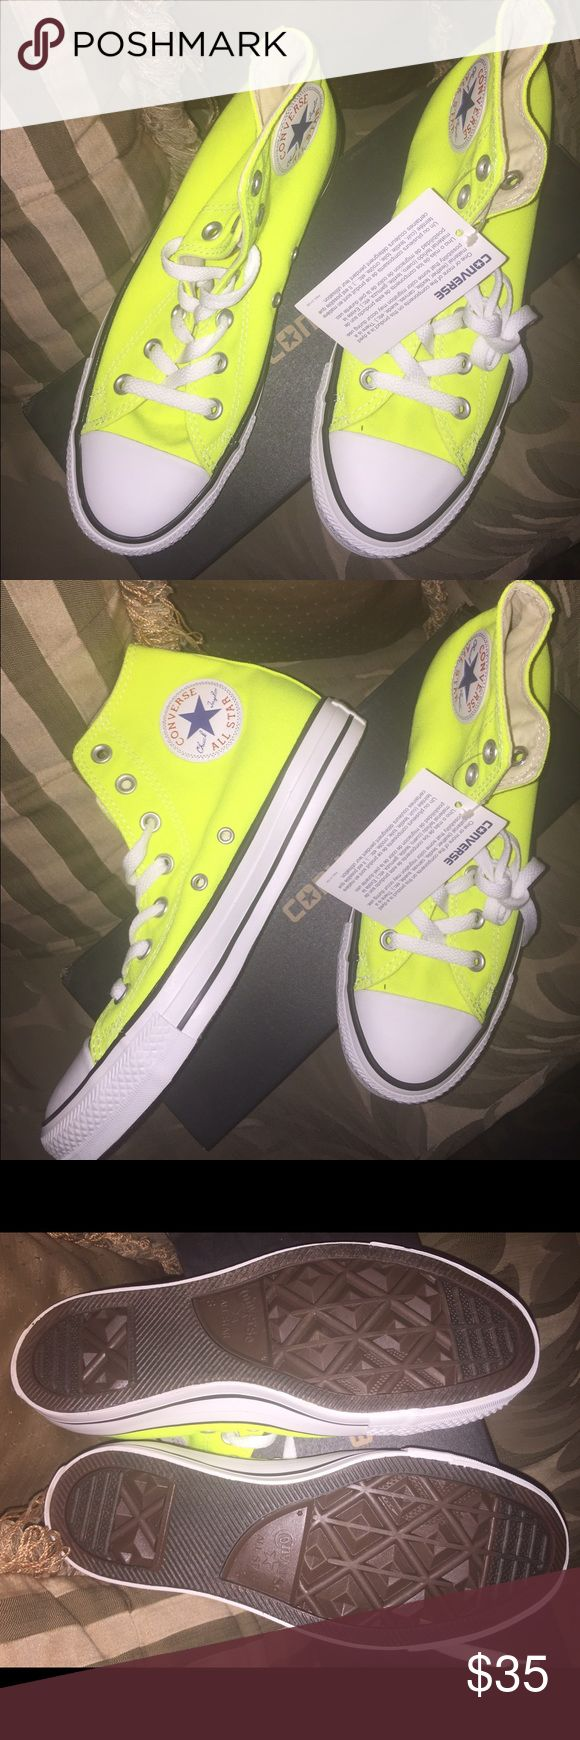 BRAND NEW! Converse neon high tops Brand new never worn neon converse chuck taylor high tops! Perfect condition and ready to brighten up your fall attire! Converse Shoes Sneakers